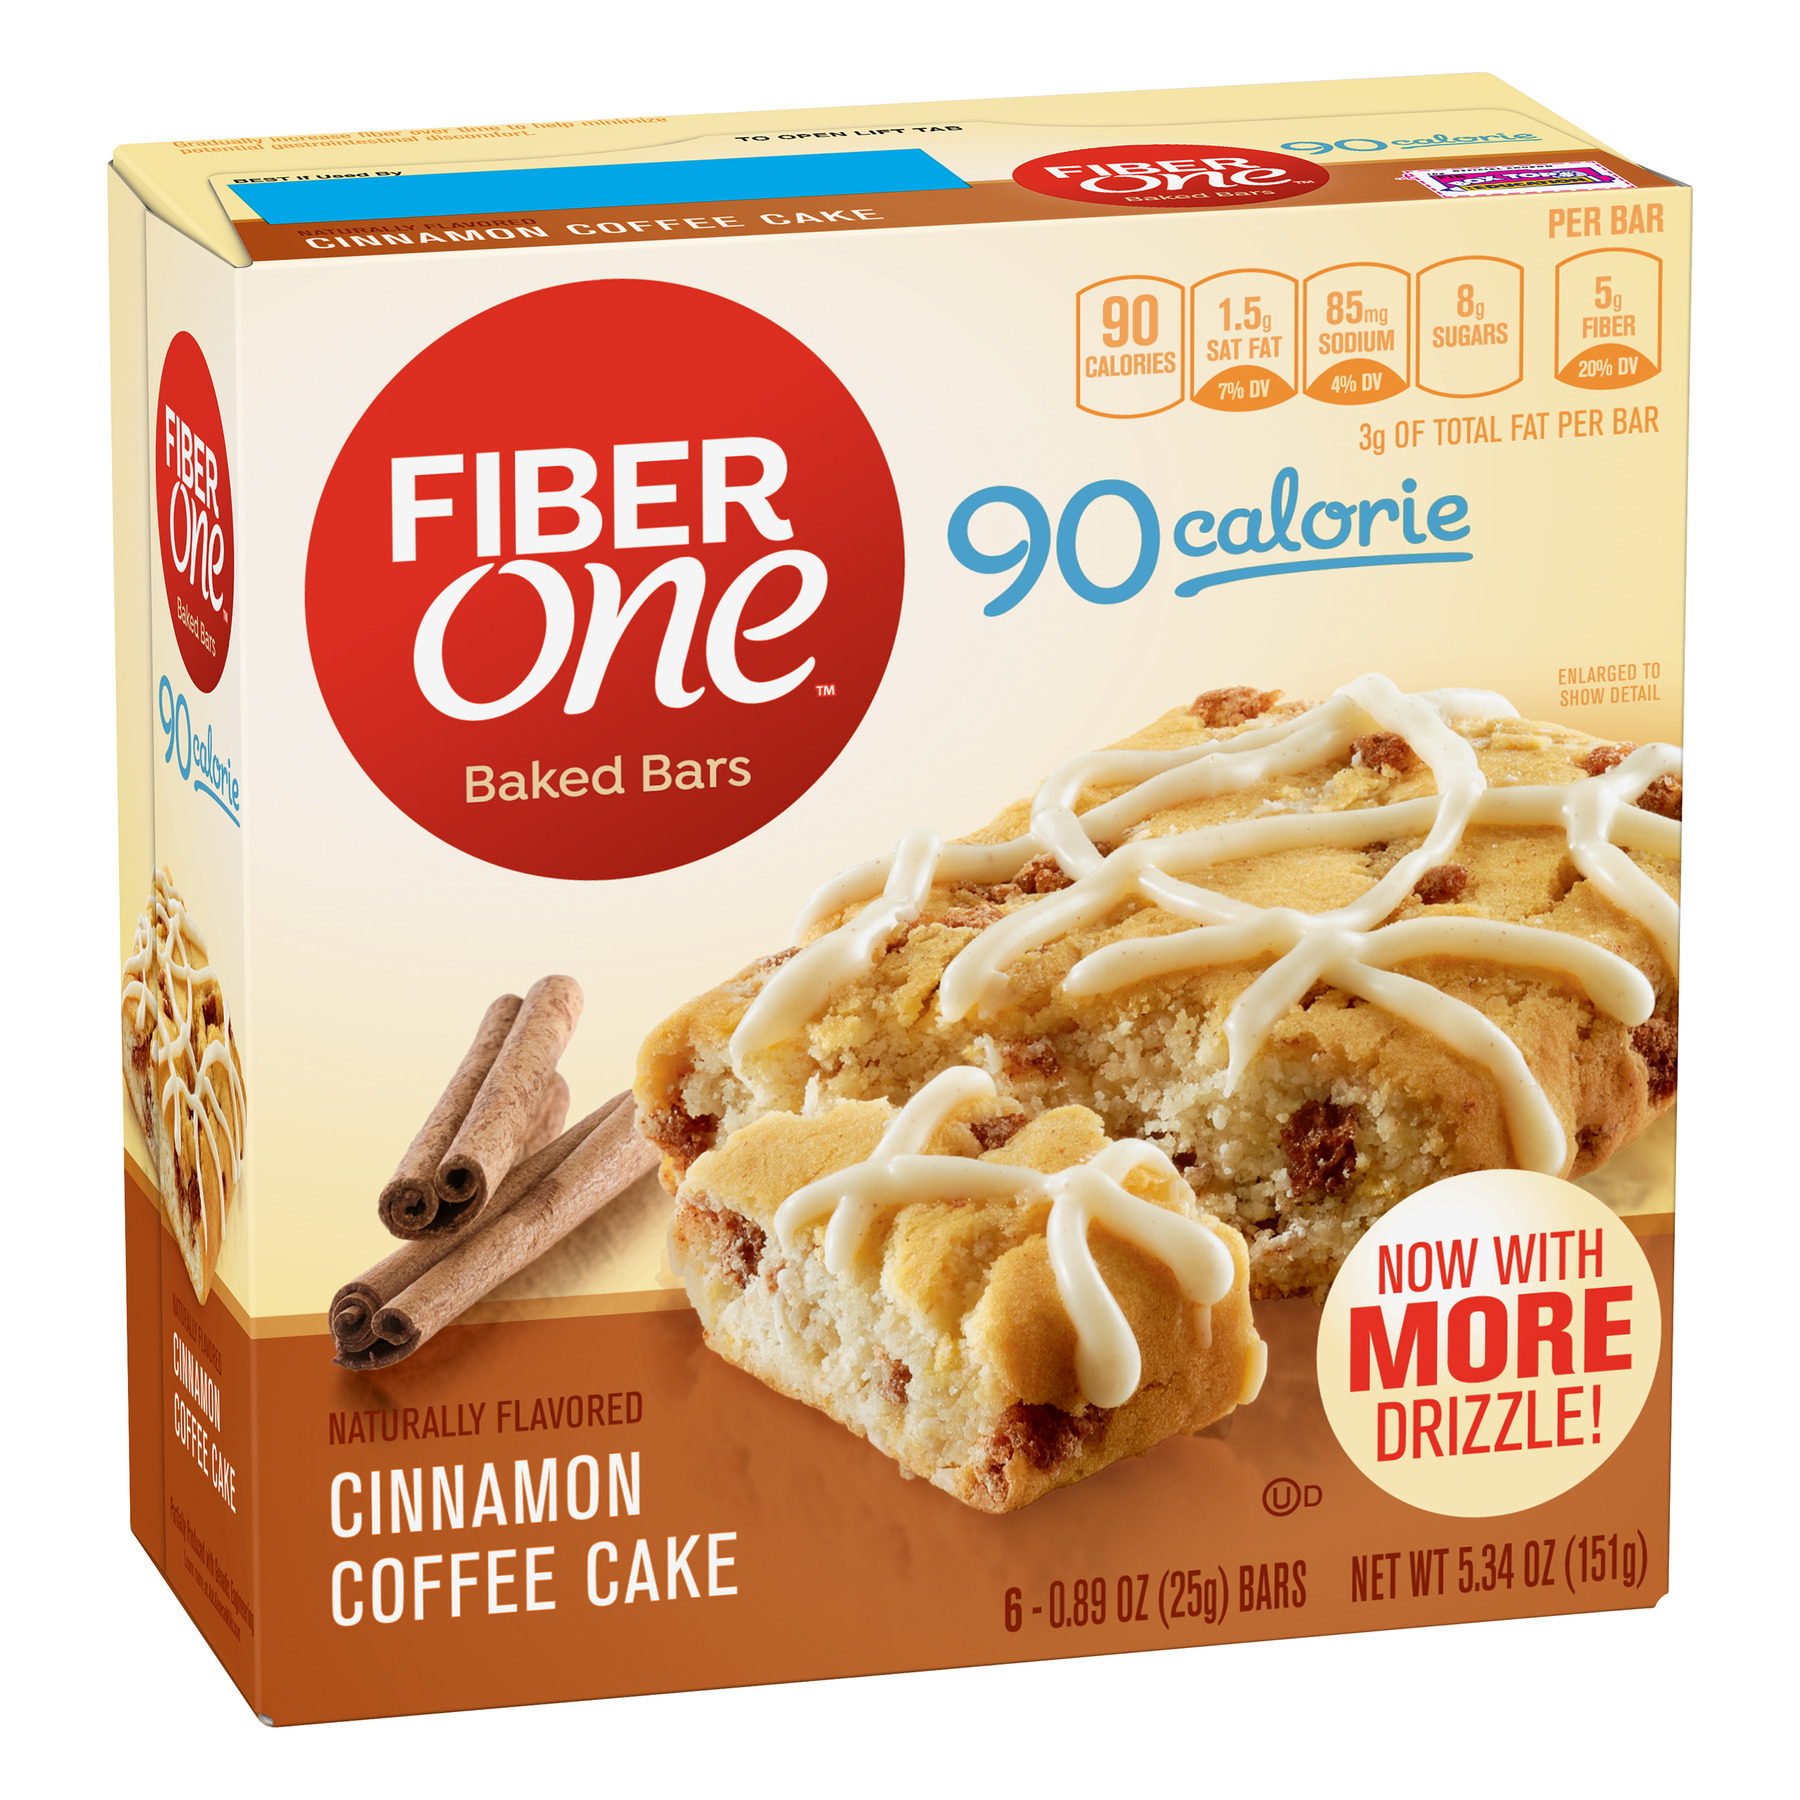 Fiber One 90 Calorie Soft-Baked Cinnamon Coffee Cake 6 Bars 5.34 oz